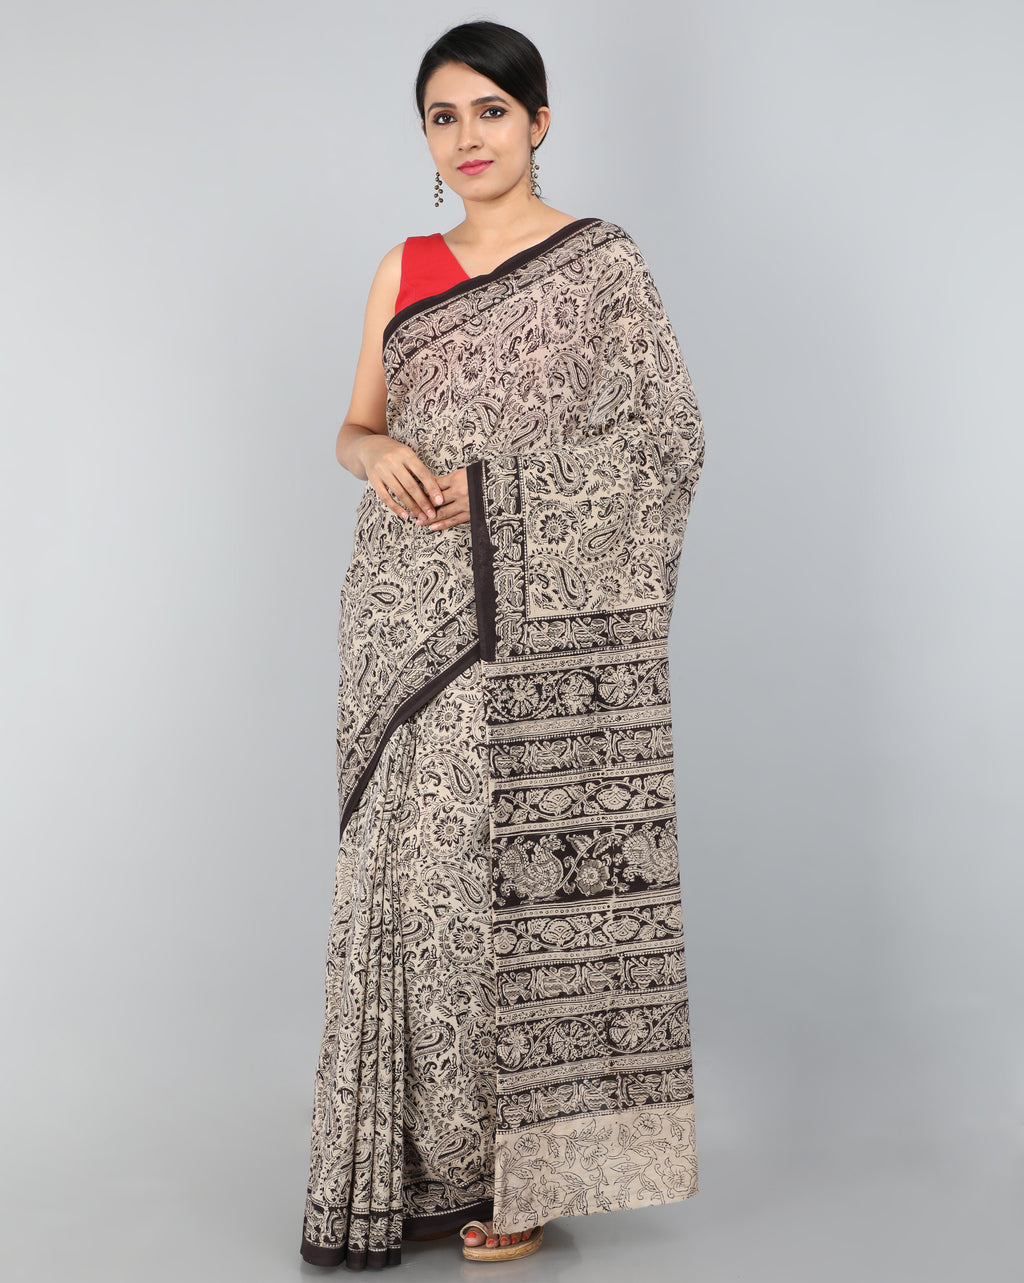 Pedana Kalamkari - Hand Block Printed - Mul Cotton Saree 04